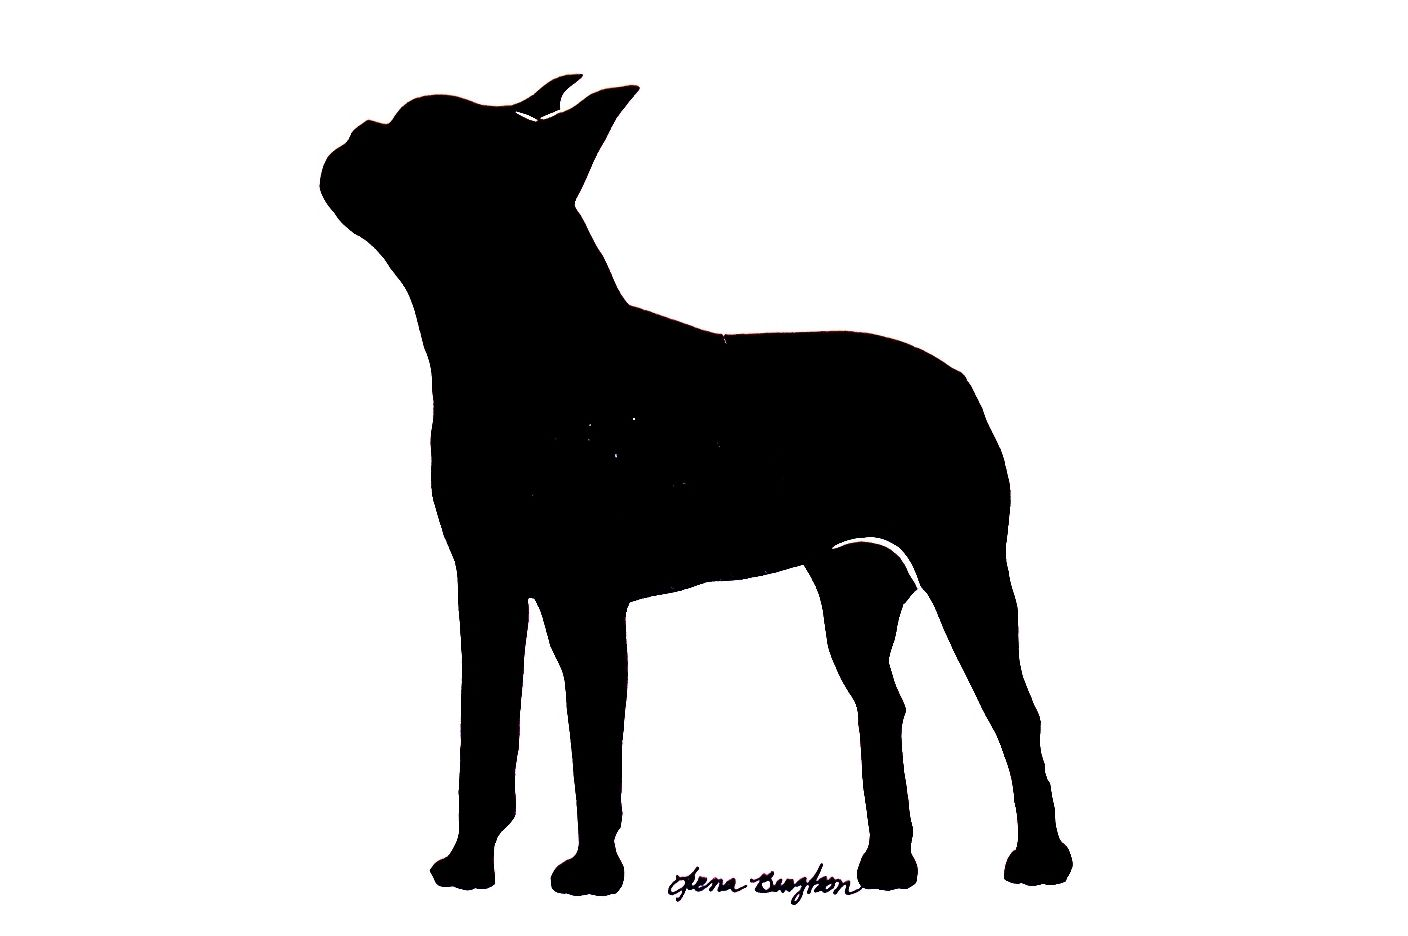 1408x936 Pix For Gt Boston Terrier Silhouette Crafts Terrier